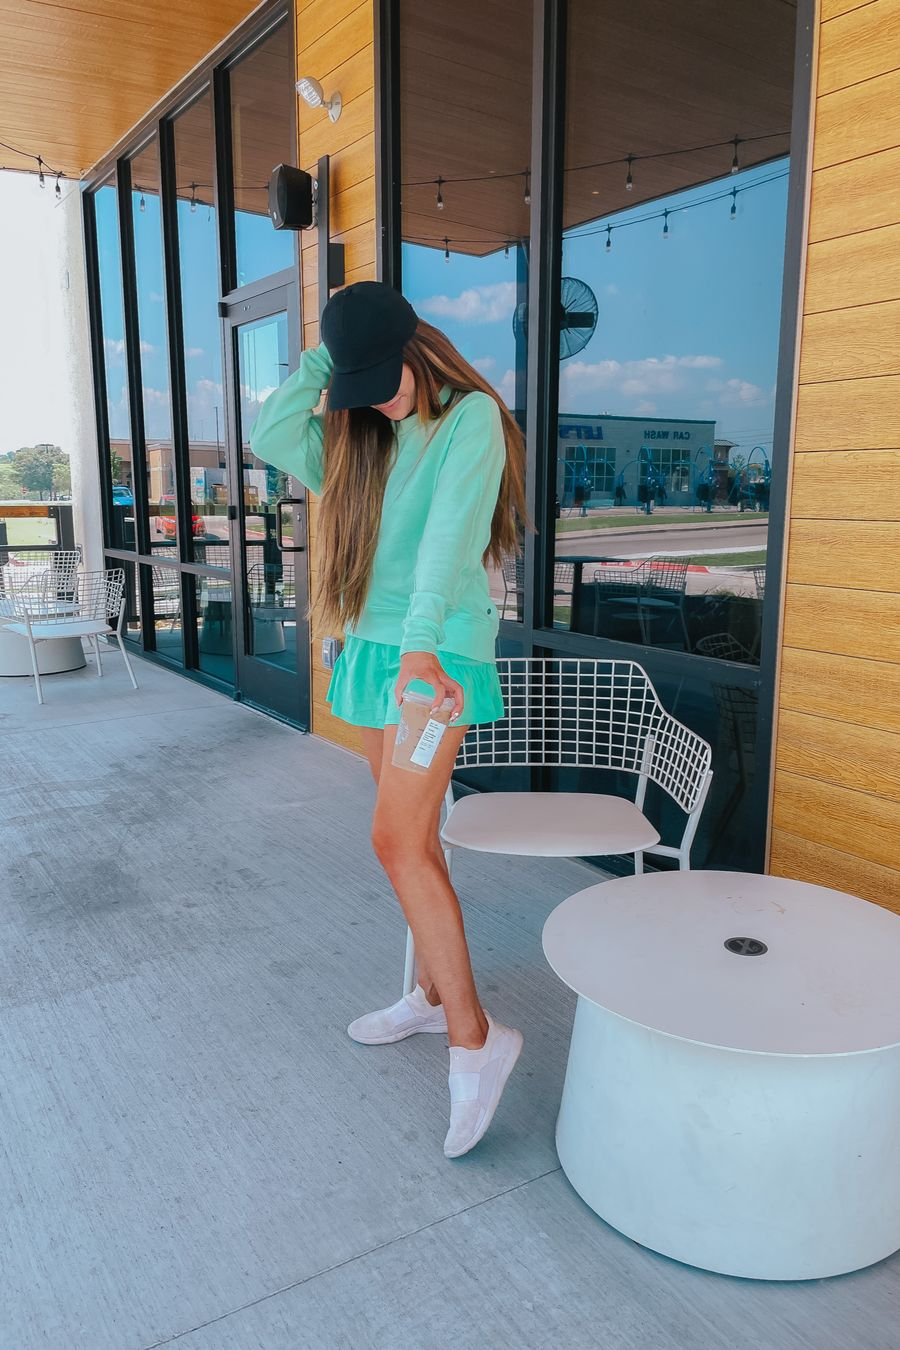 workout outfit, emily ann gemma, errand outfit, free people shorts, Zella sweatshirt, Lululemon baller cap, apl tennis shoes, best athletic shoes, best athletic outfits, Emily ann gemma, summer 2021 | June Instagram Recap by popular US fashion blog, The Sweetest Thing: image of Emily Gemma wearing a black hat, mint green long sleeve top, mint green skirt, and white sneakers.